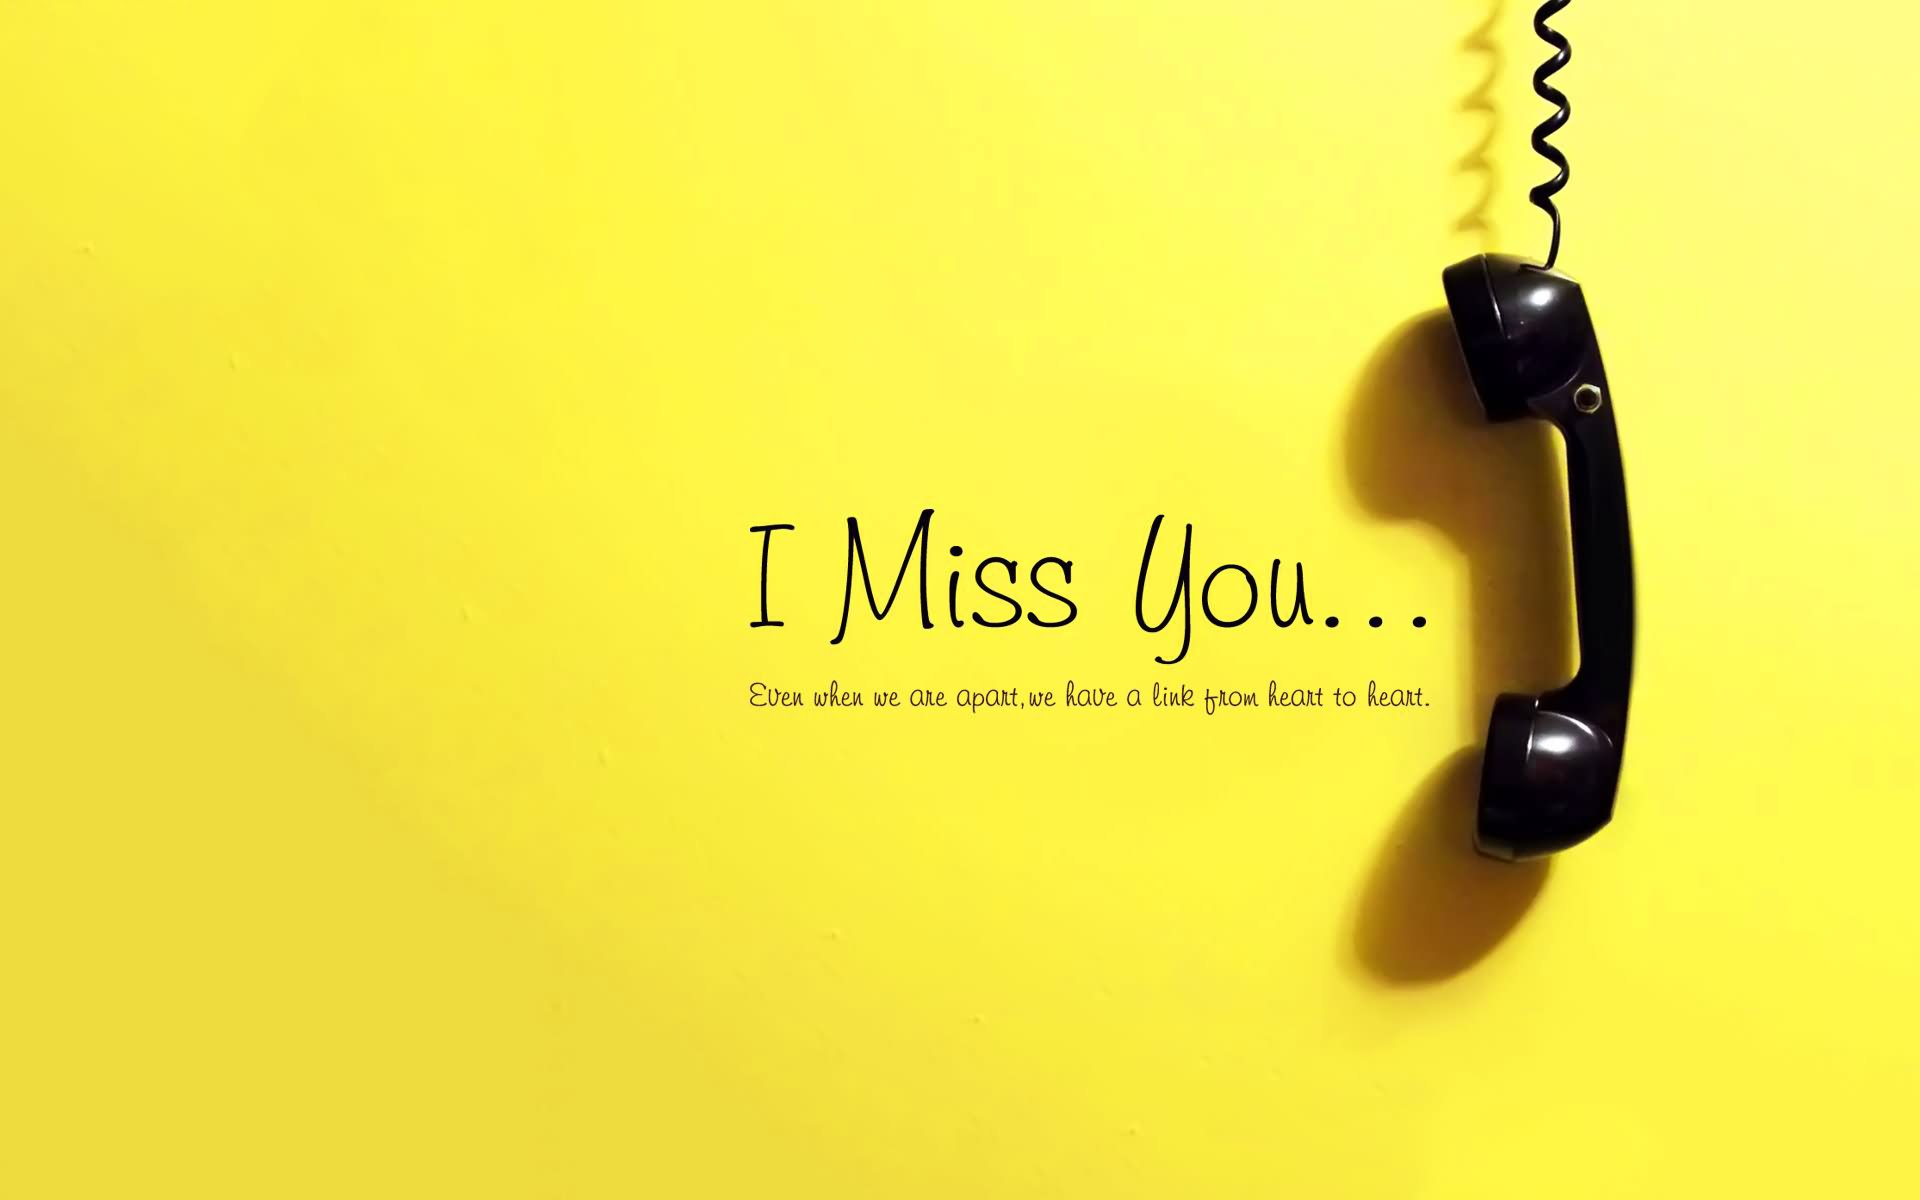 I Miss You Greeting Wallpaper